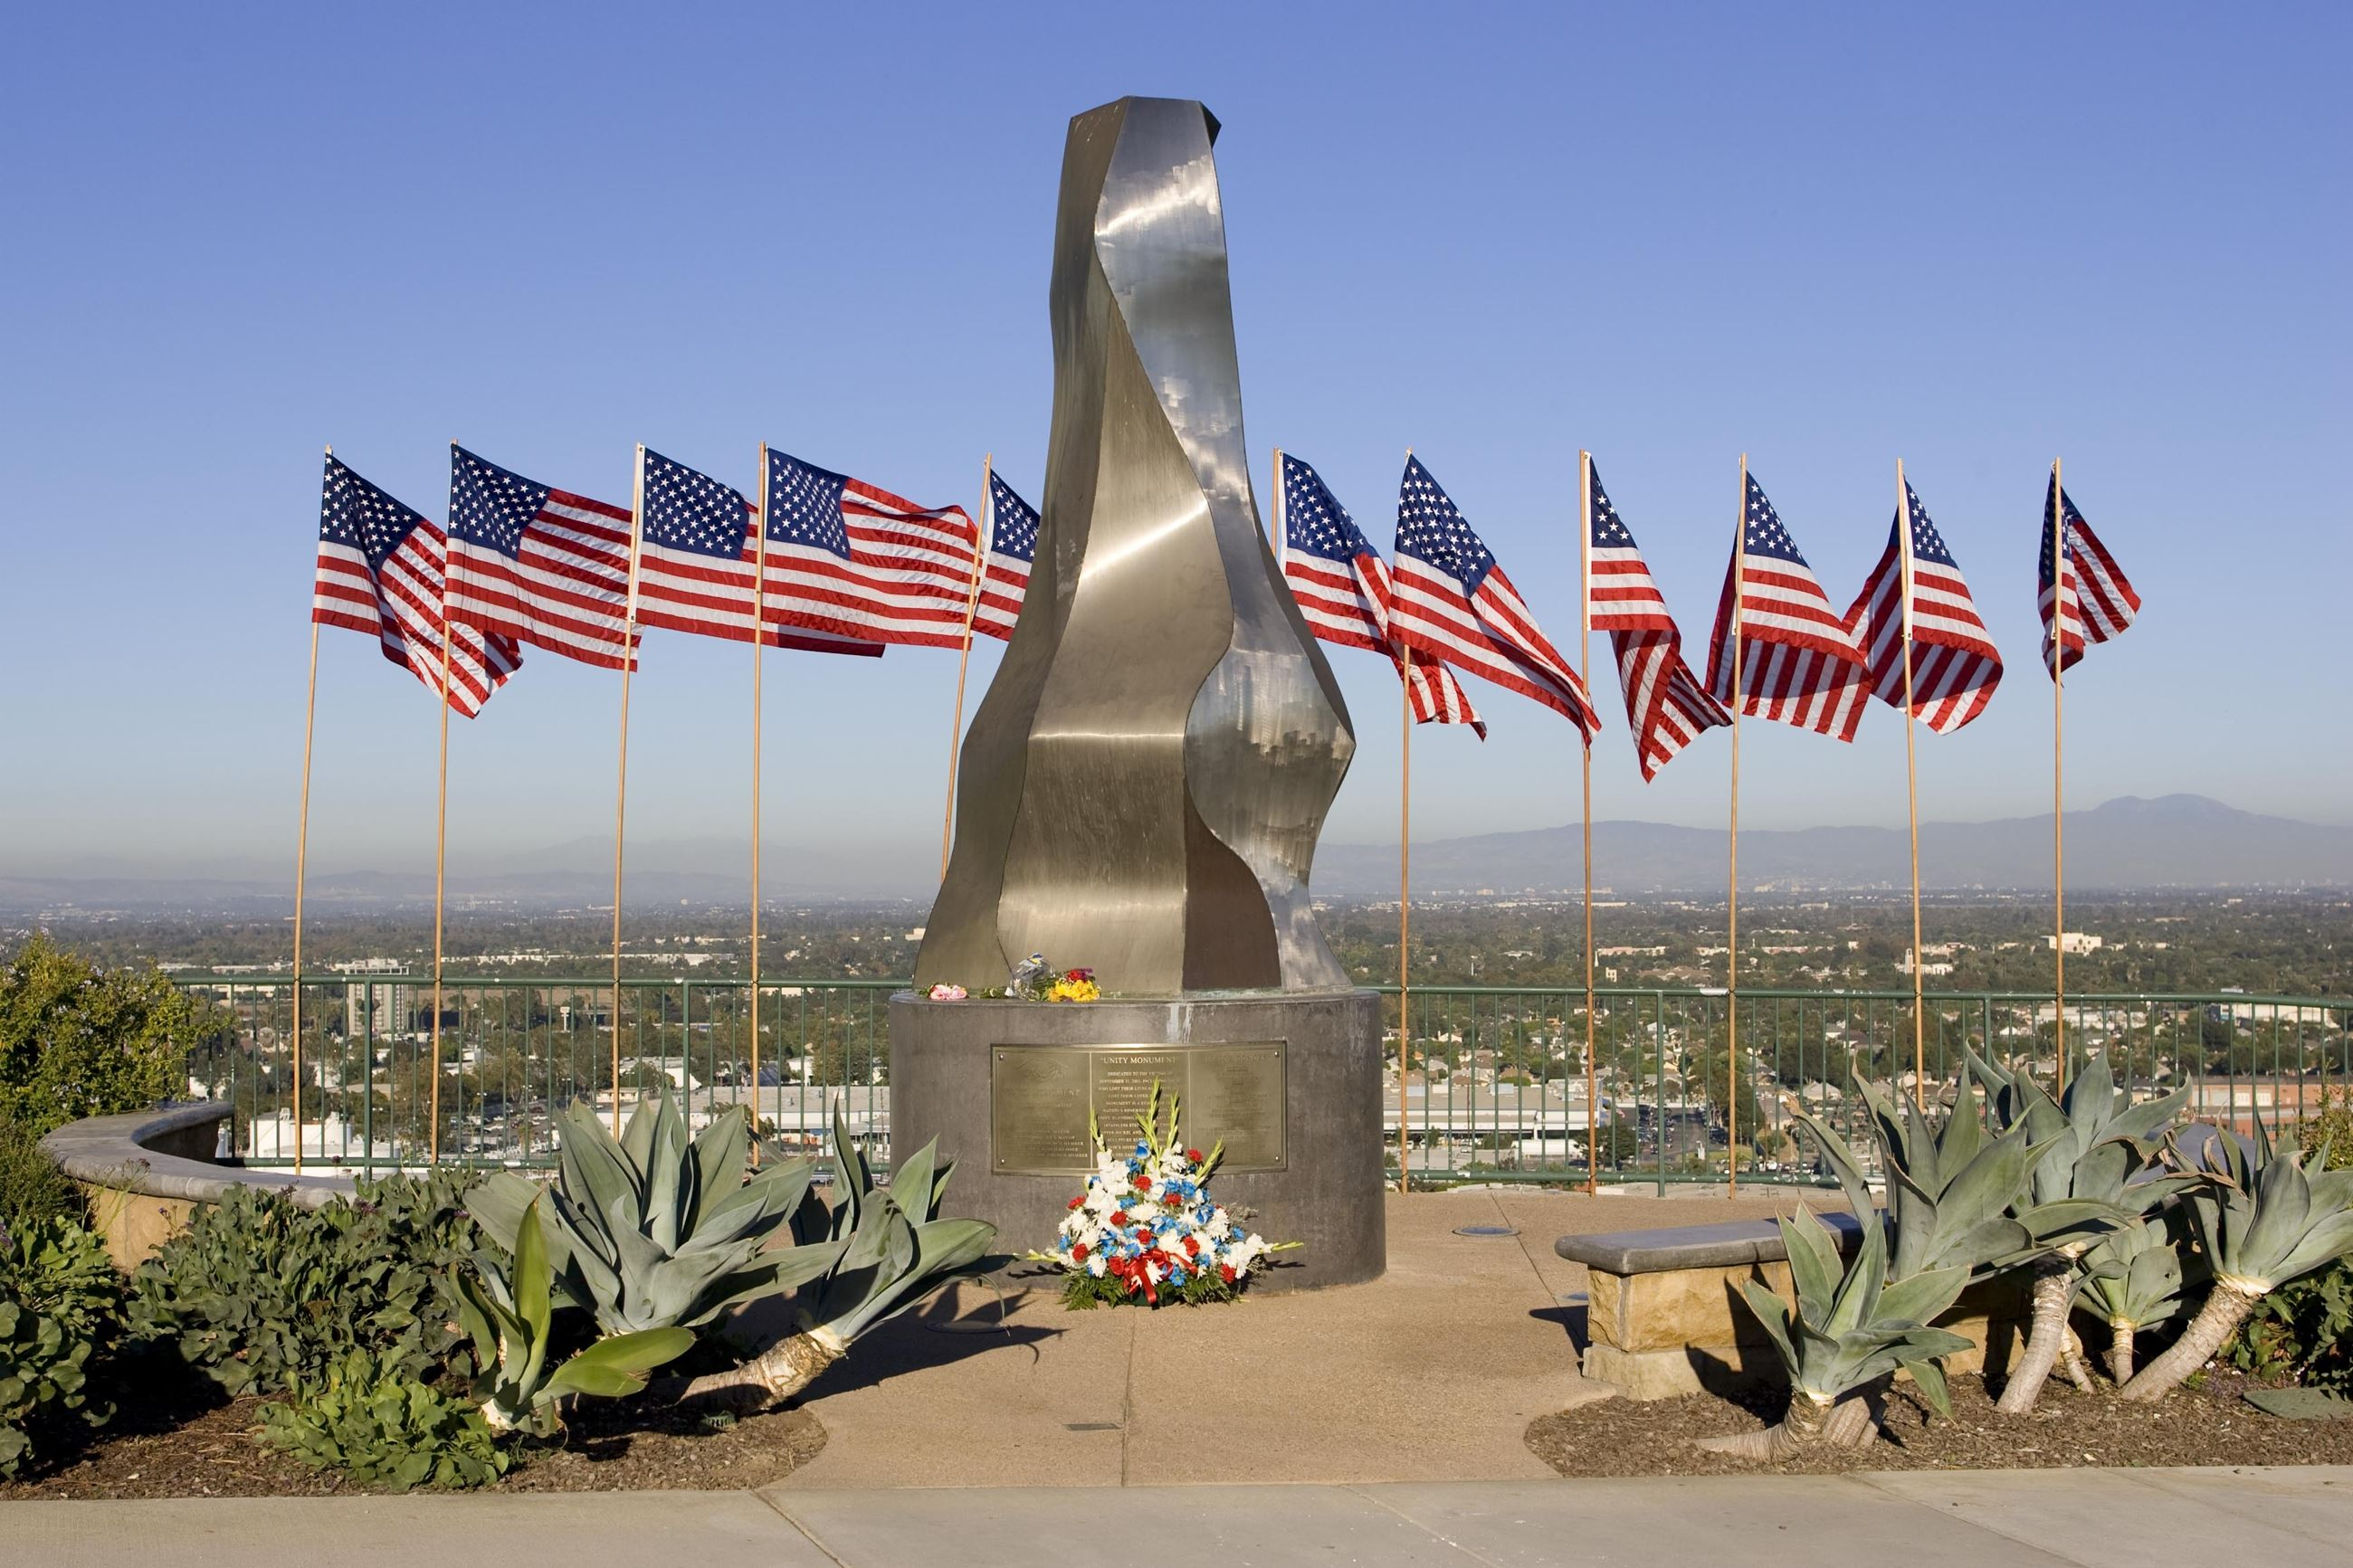 Unity Monument with American flags and flowers